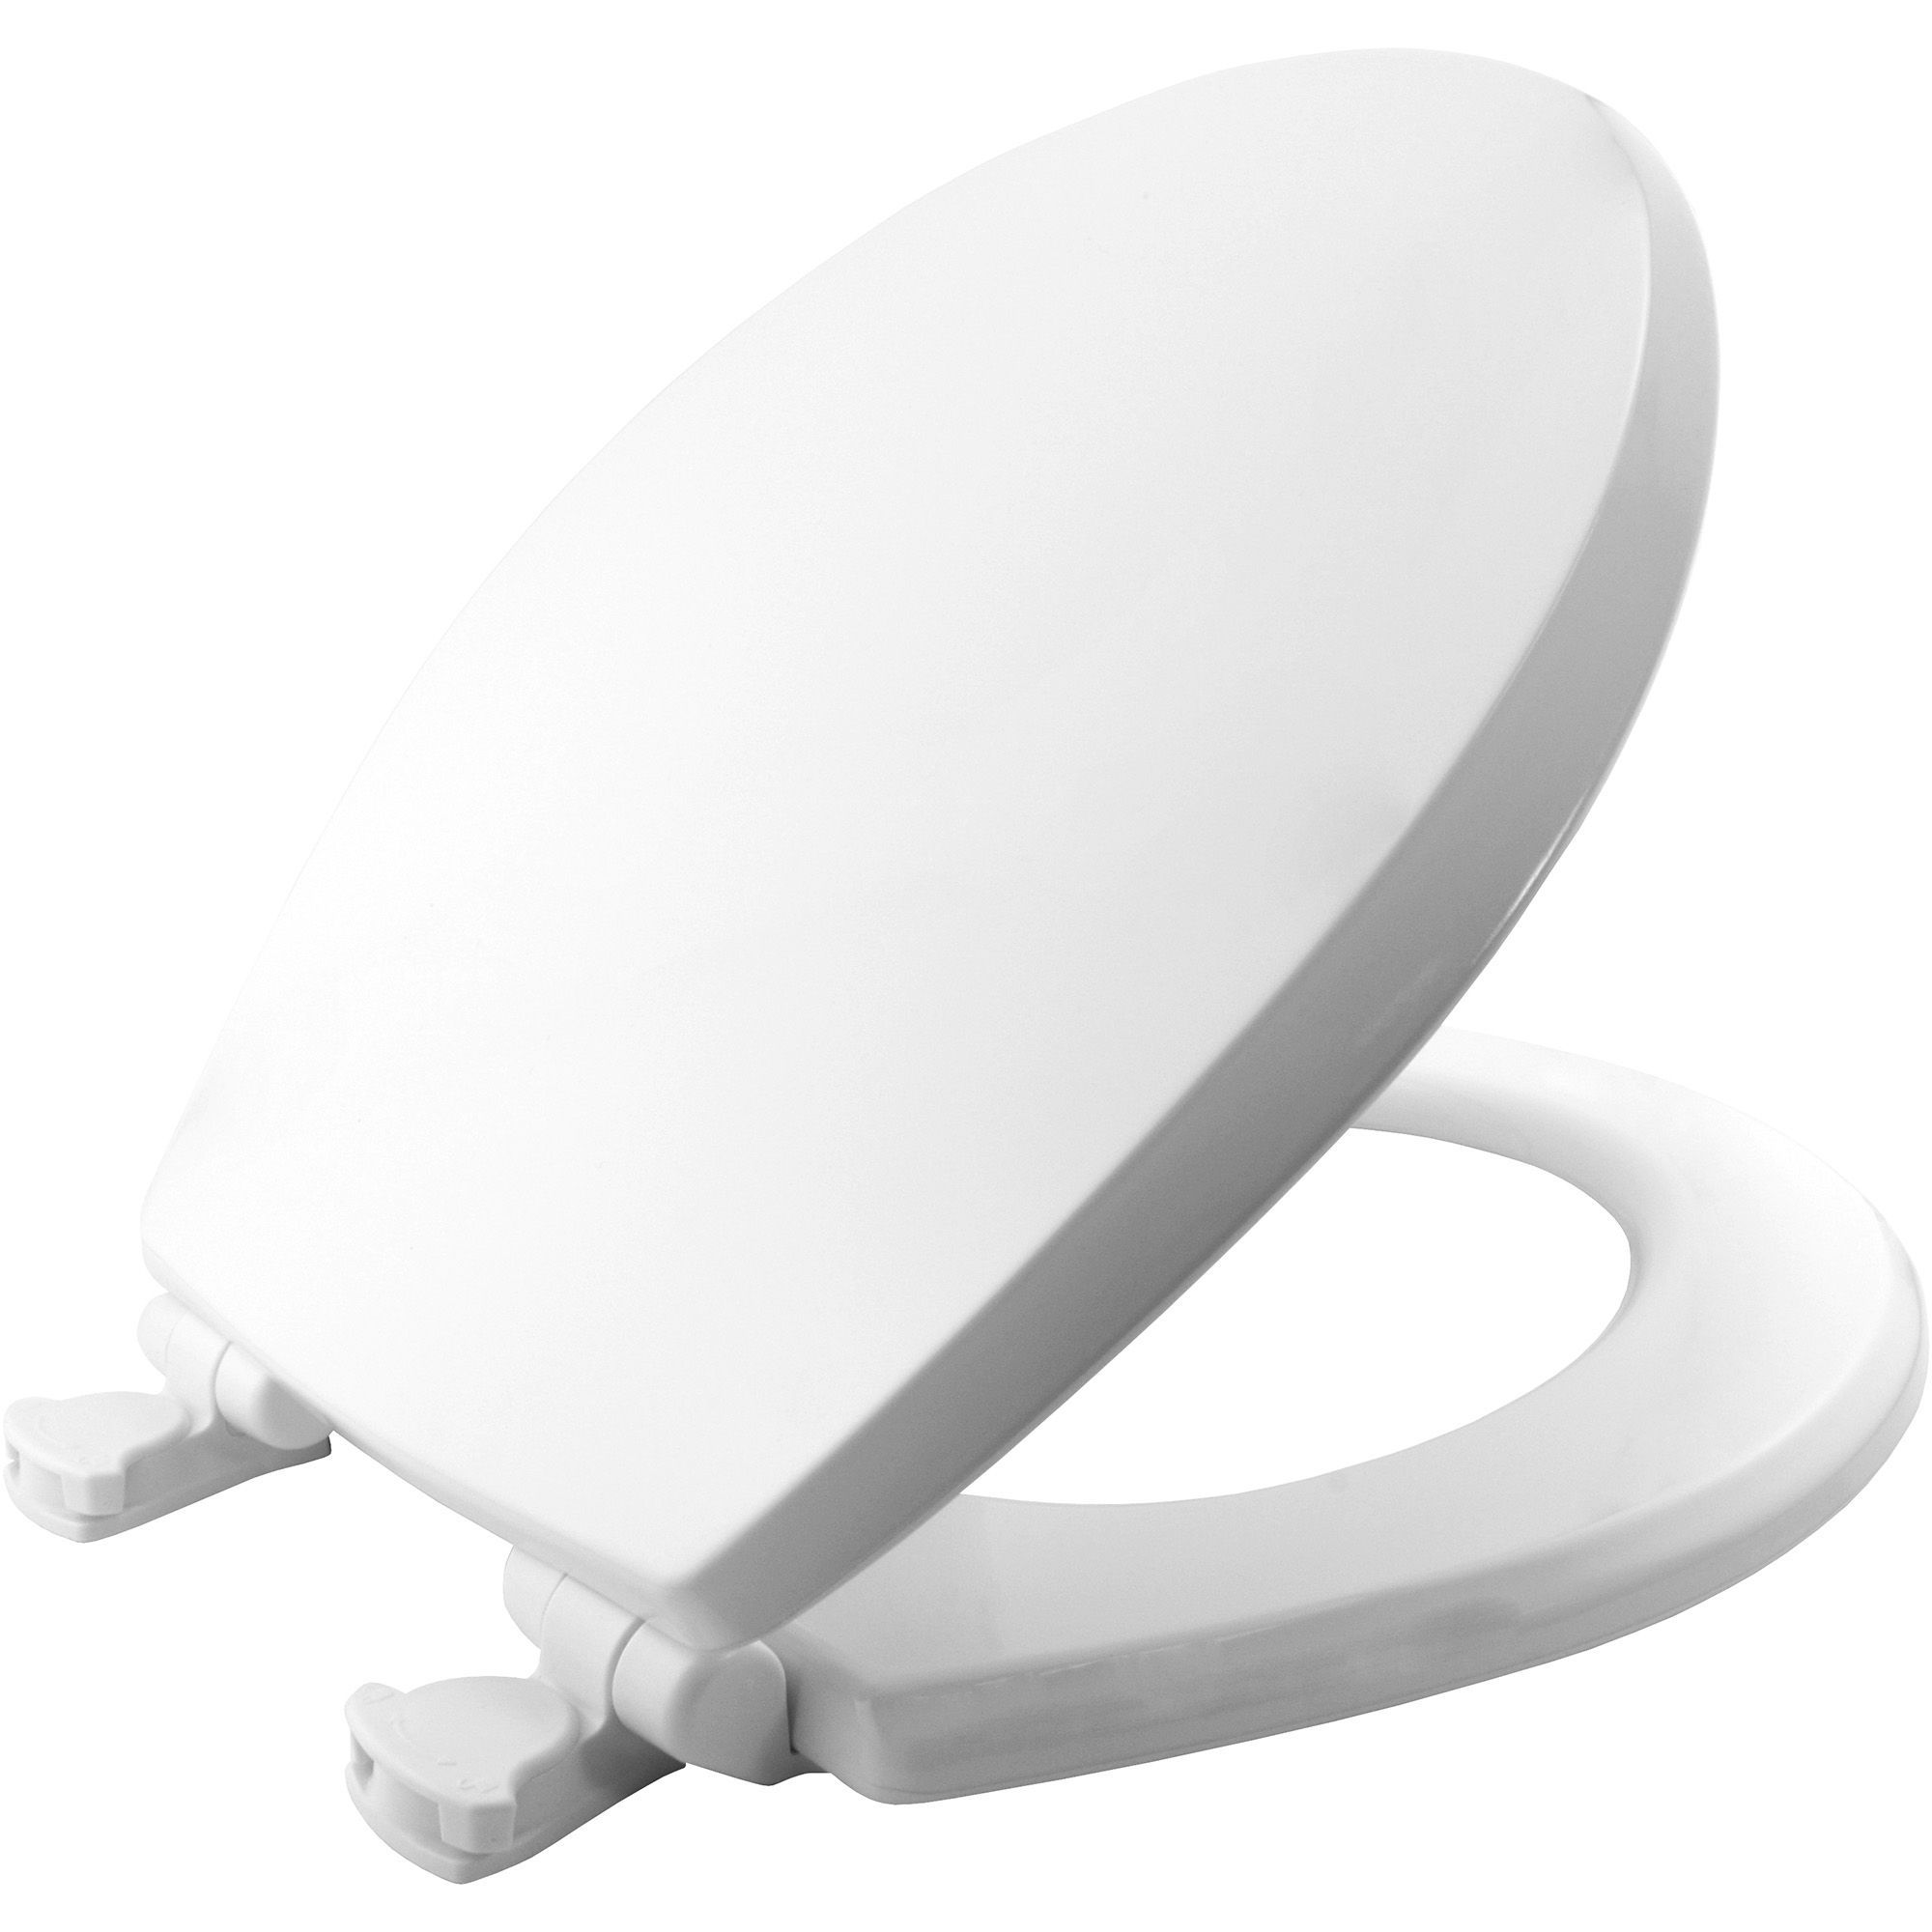 Bemis Boston White Soft Close Toilet Seat Departments DIY At BQ - Blue soft close toilet seat